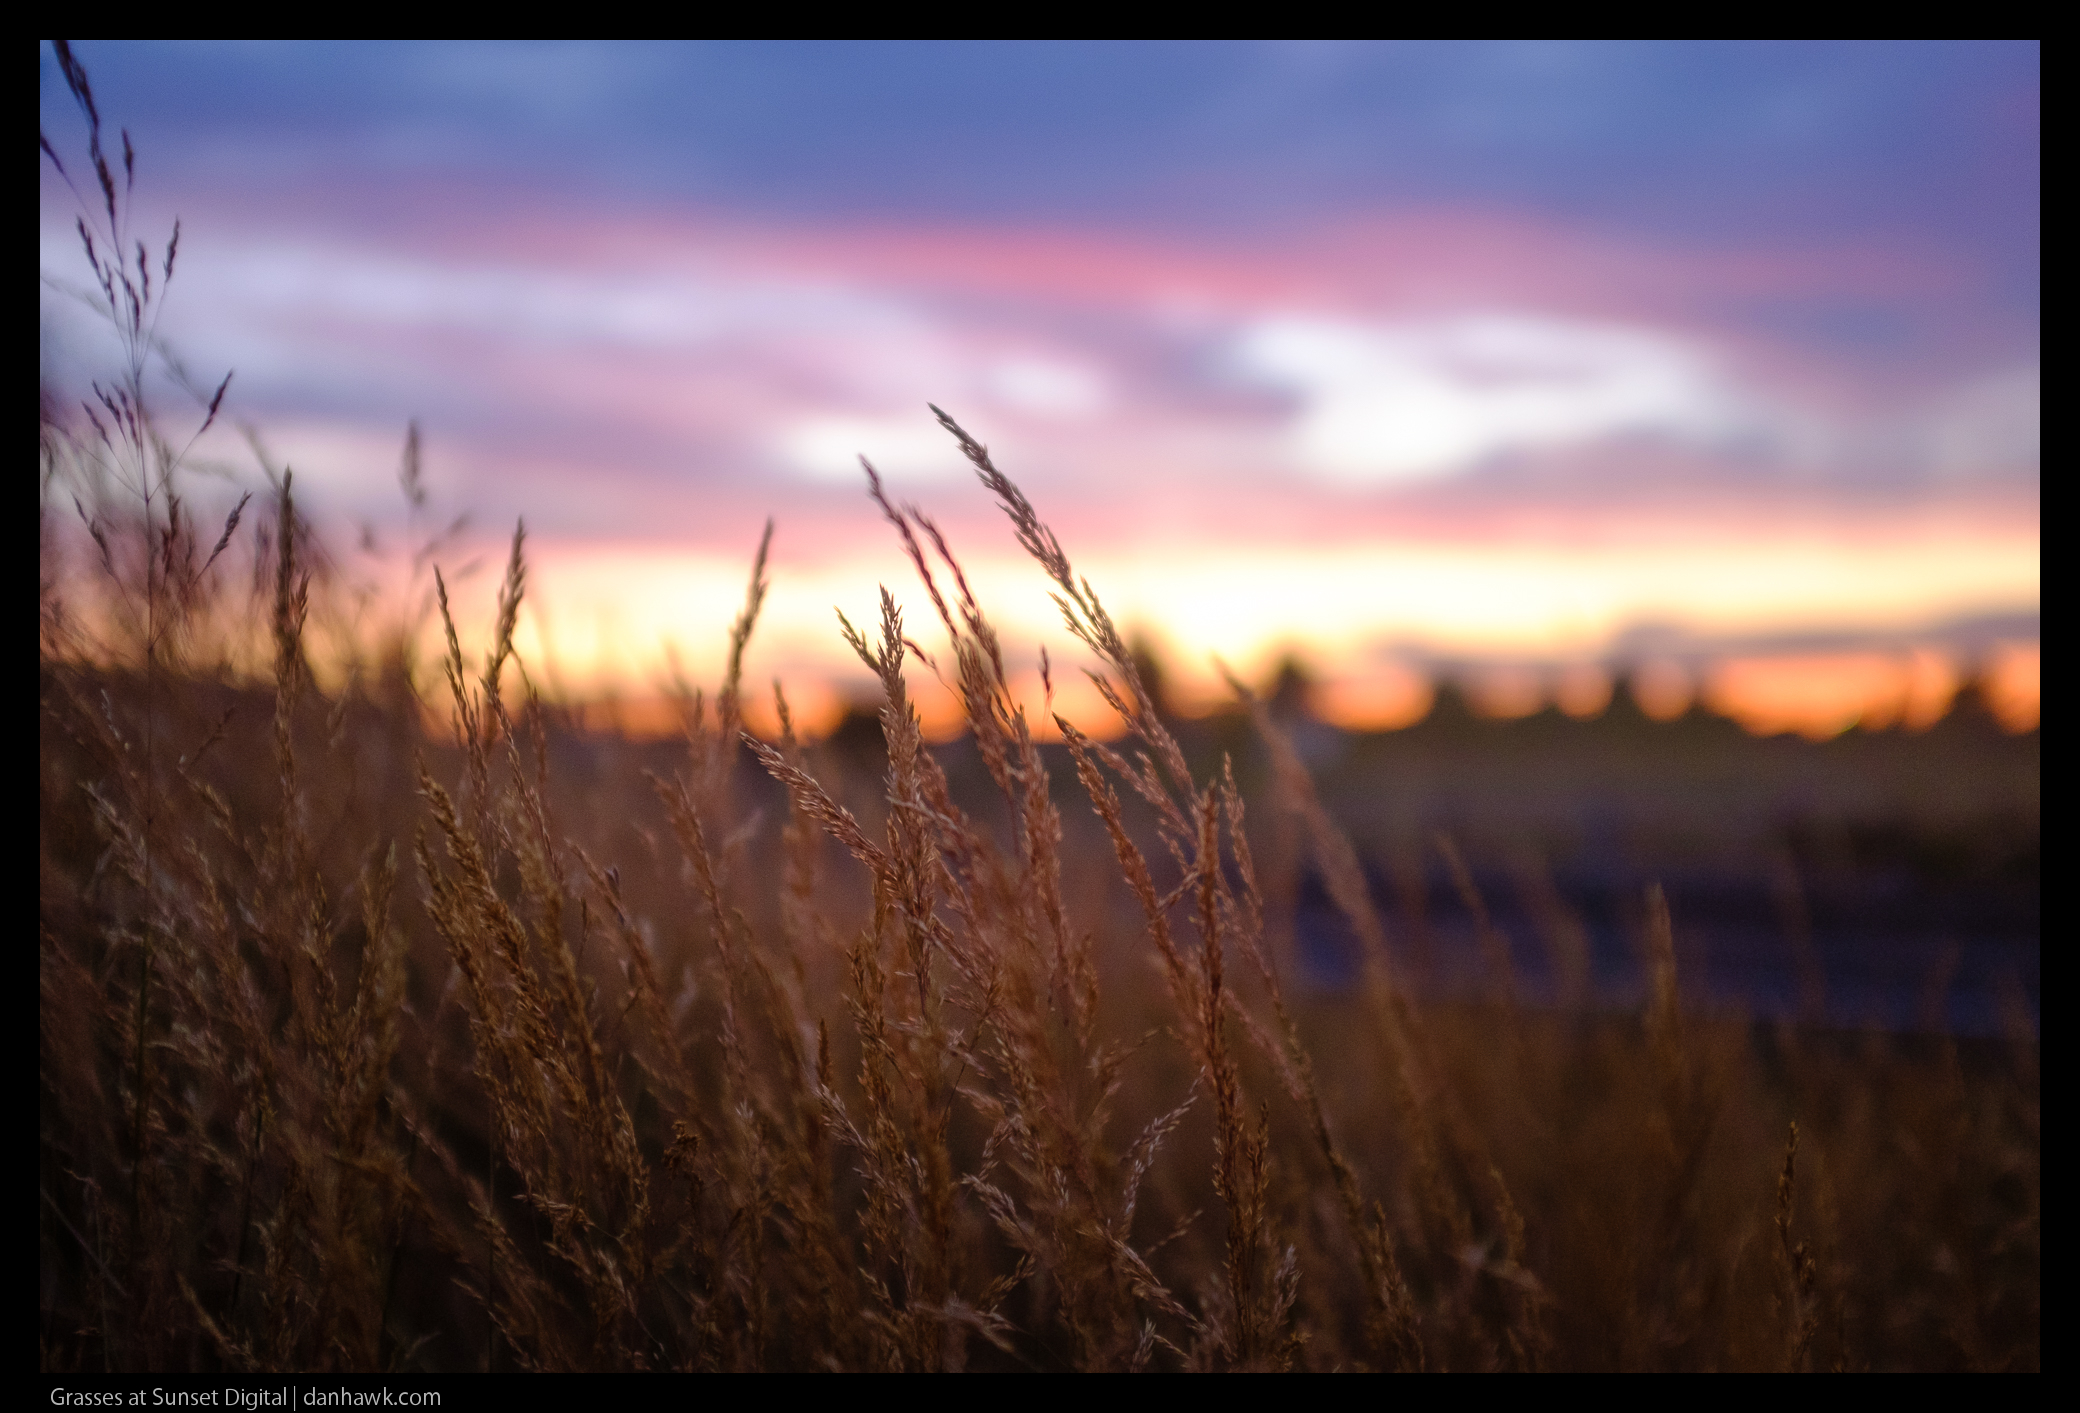 Grasses at Sunset Digital